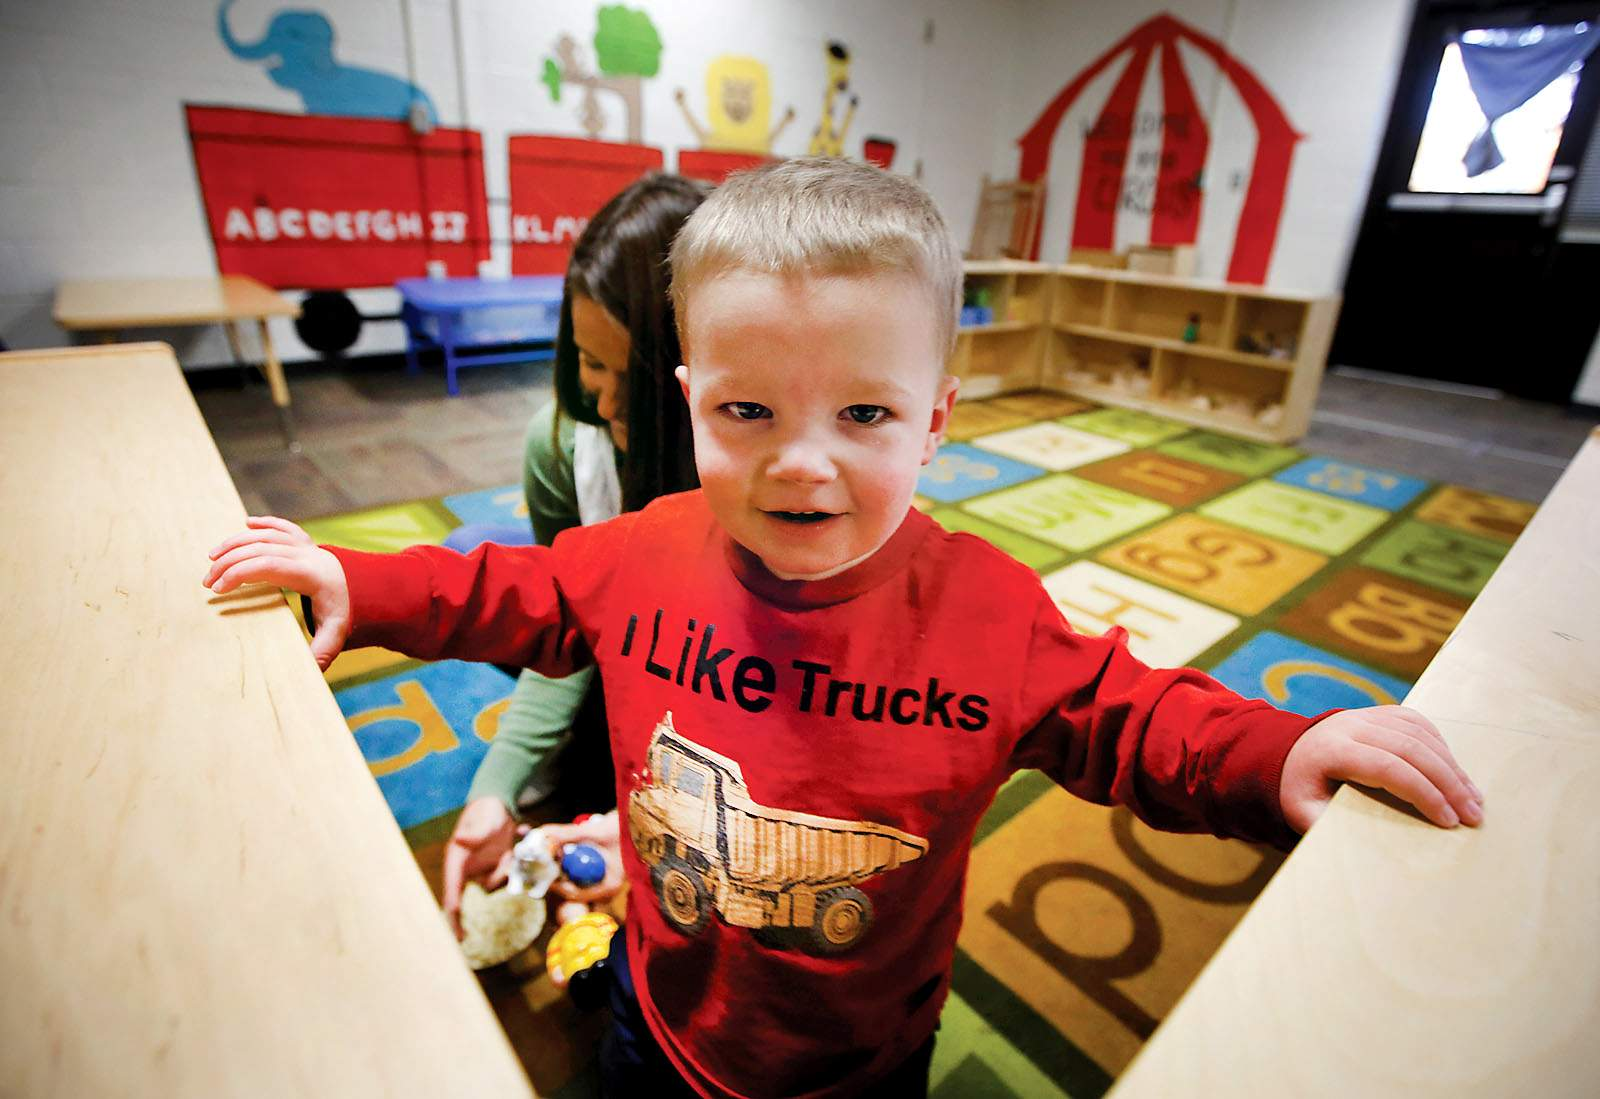 Durango High School students receive experience in child care - The Durango Herald